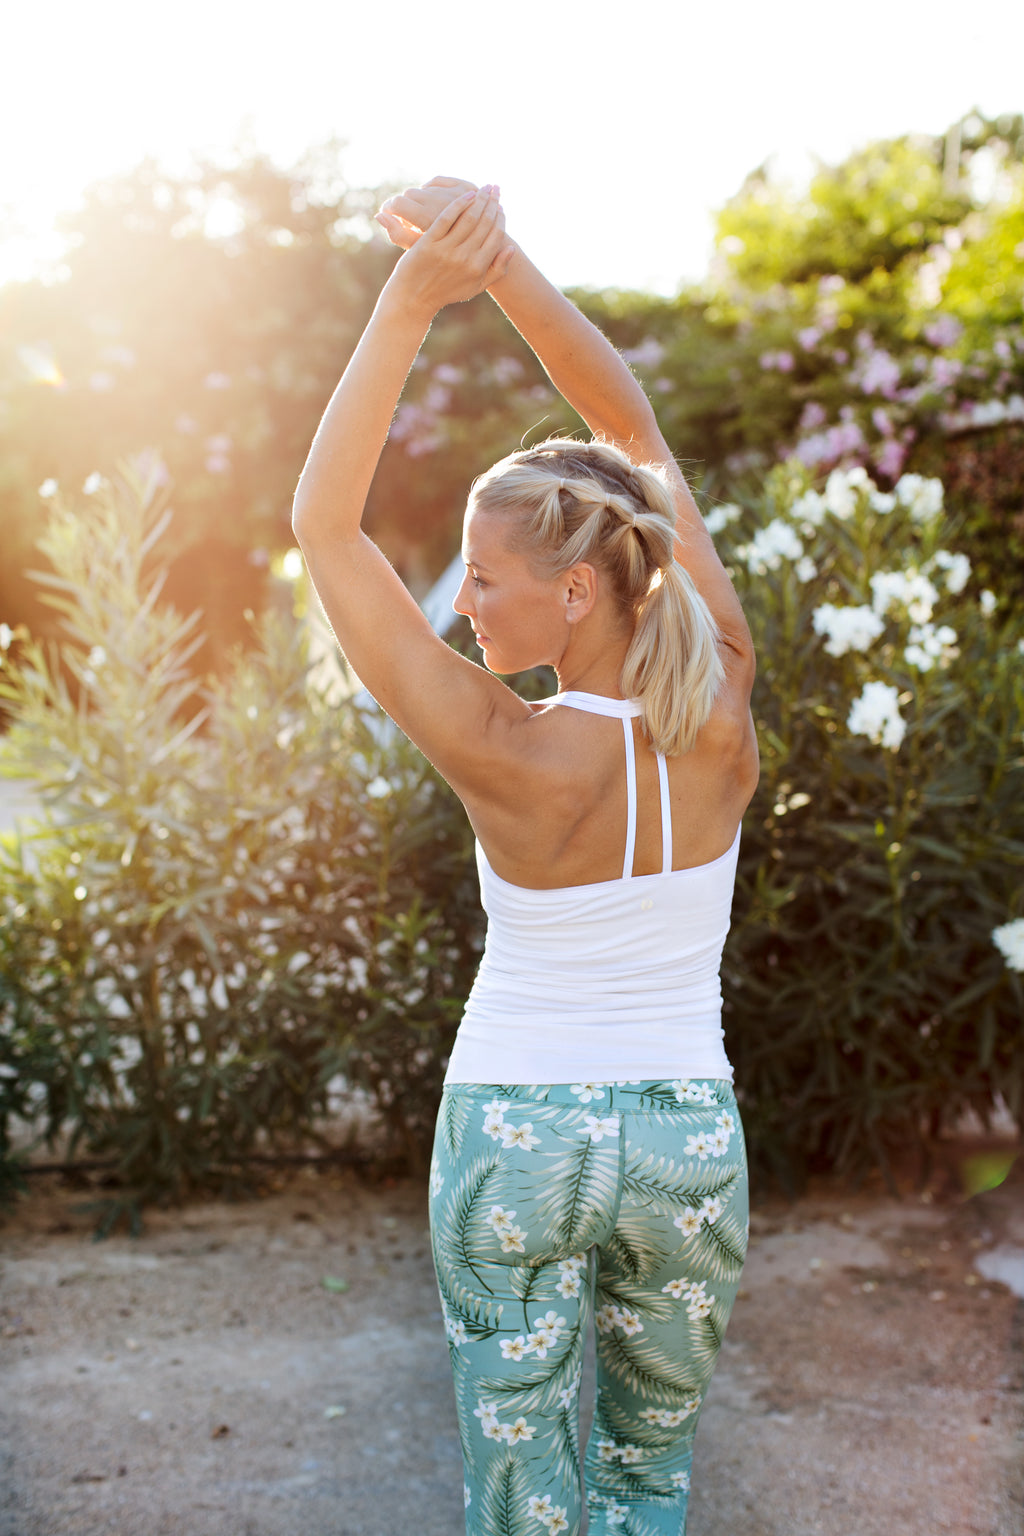 SEA YOGI // Bamboo T-string Top in pure white from Run & relax, lifestlye